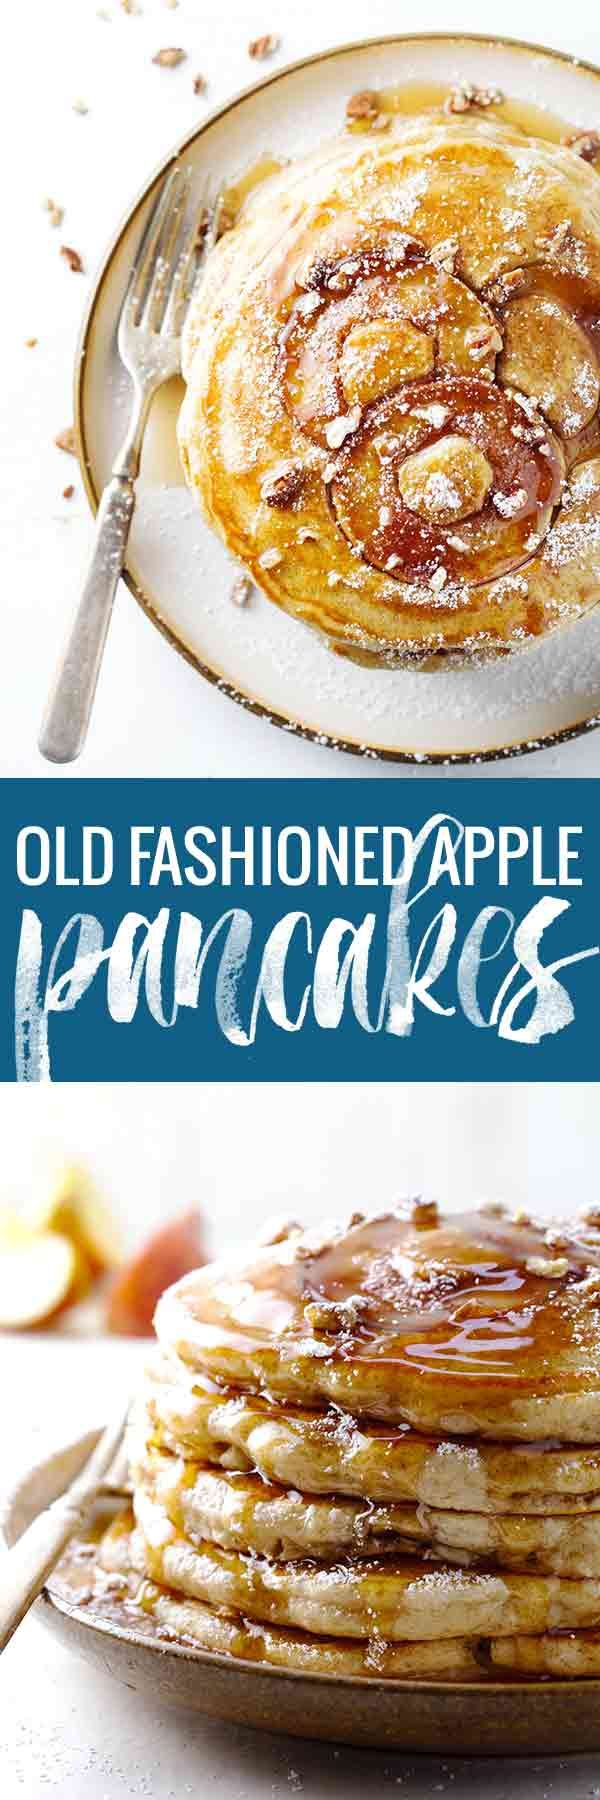 132 best After school snacks images on Pinterest | Cooking food ...